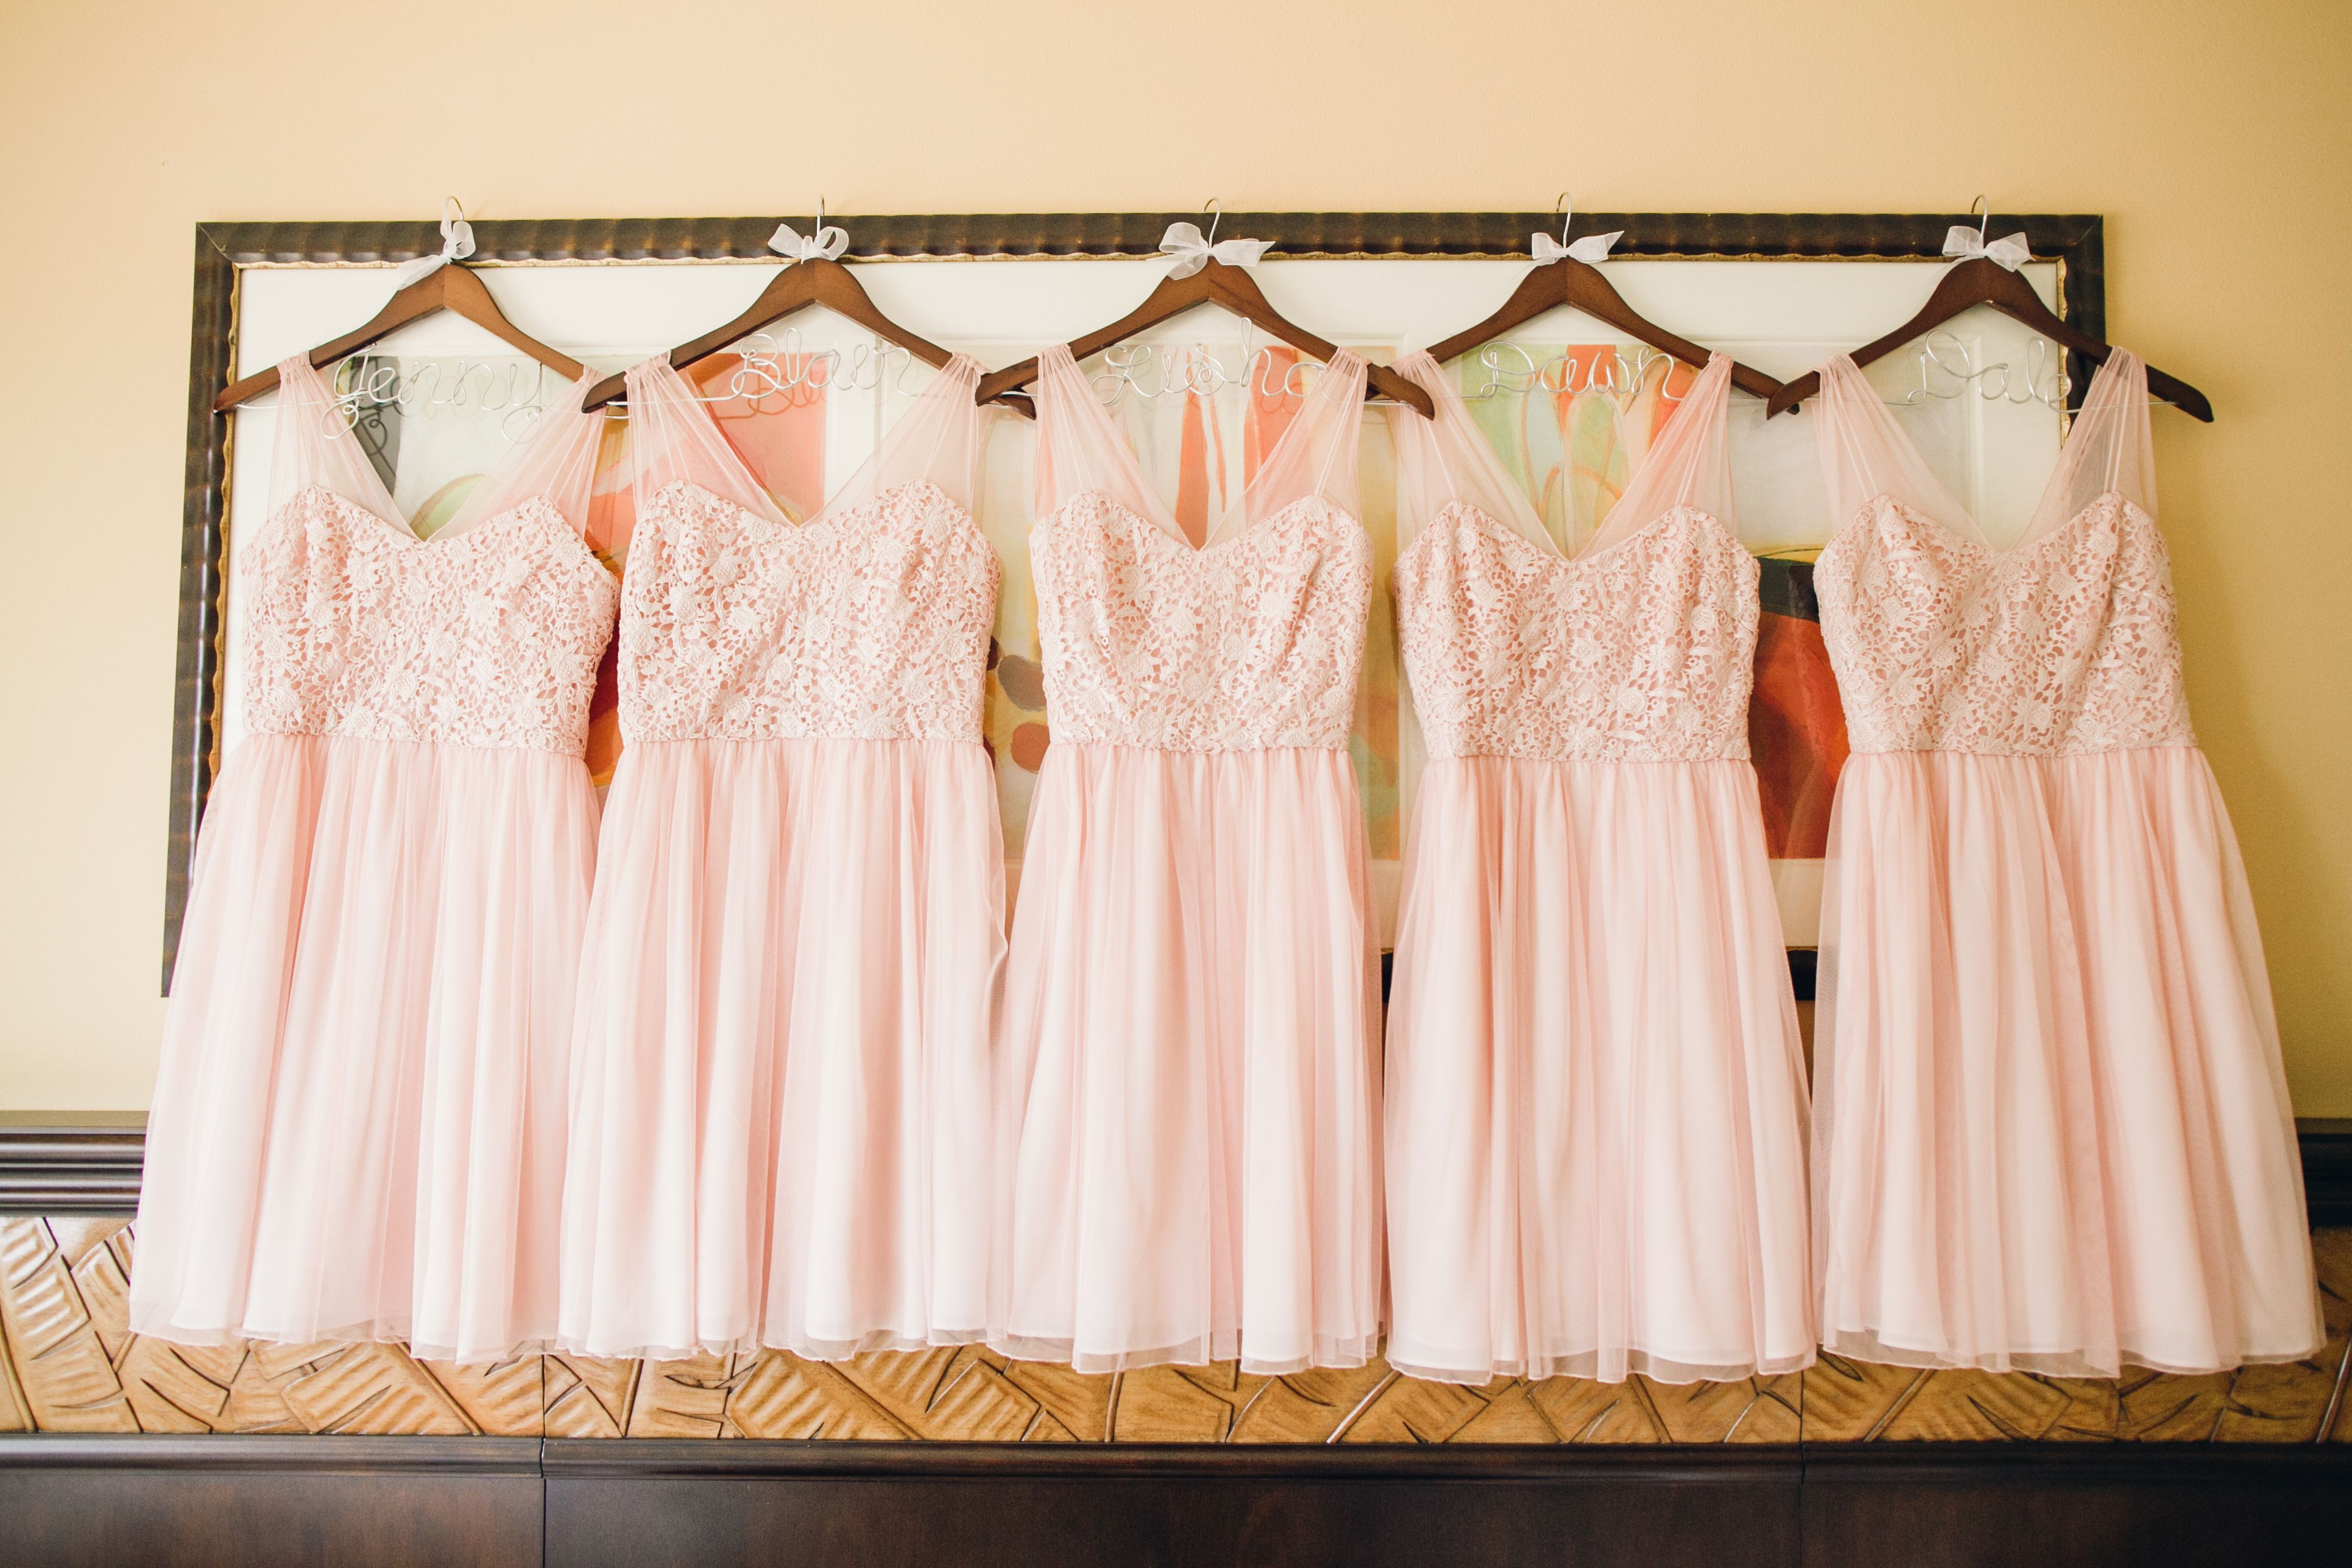 Peach bridesmaid dresses with personalized hangers - darling! #peach ...